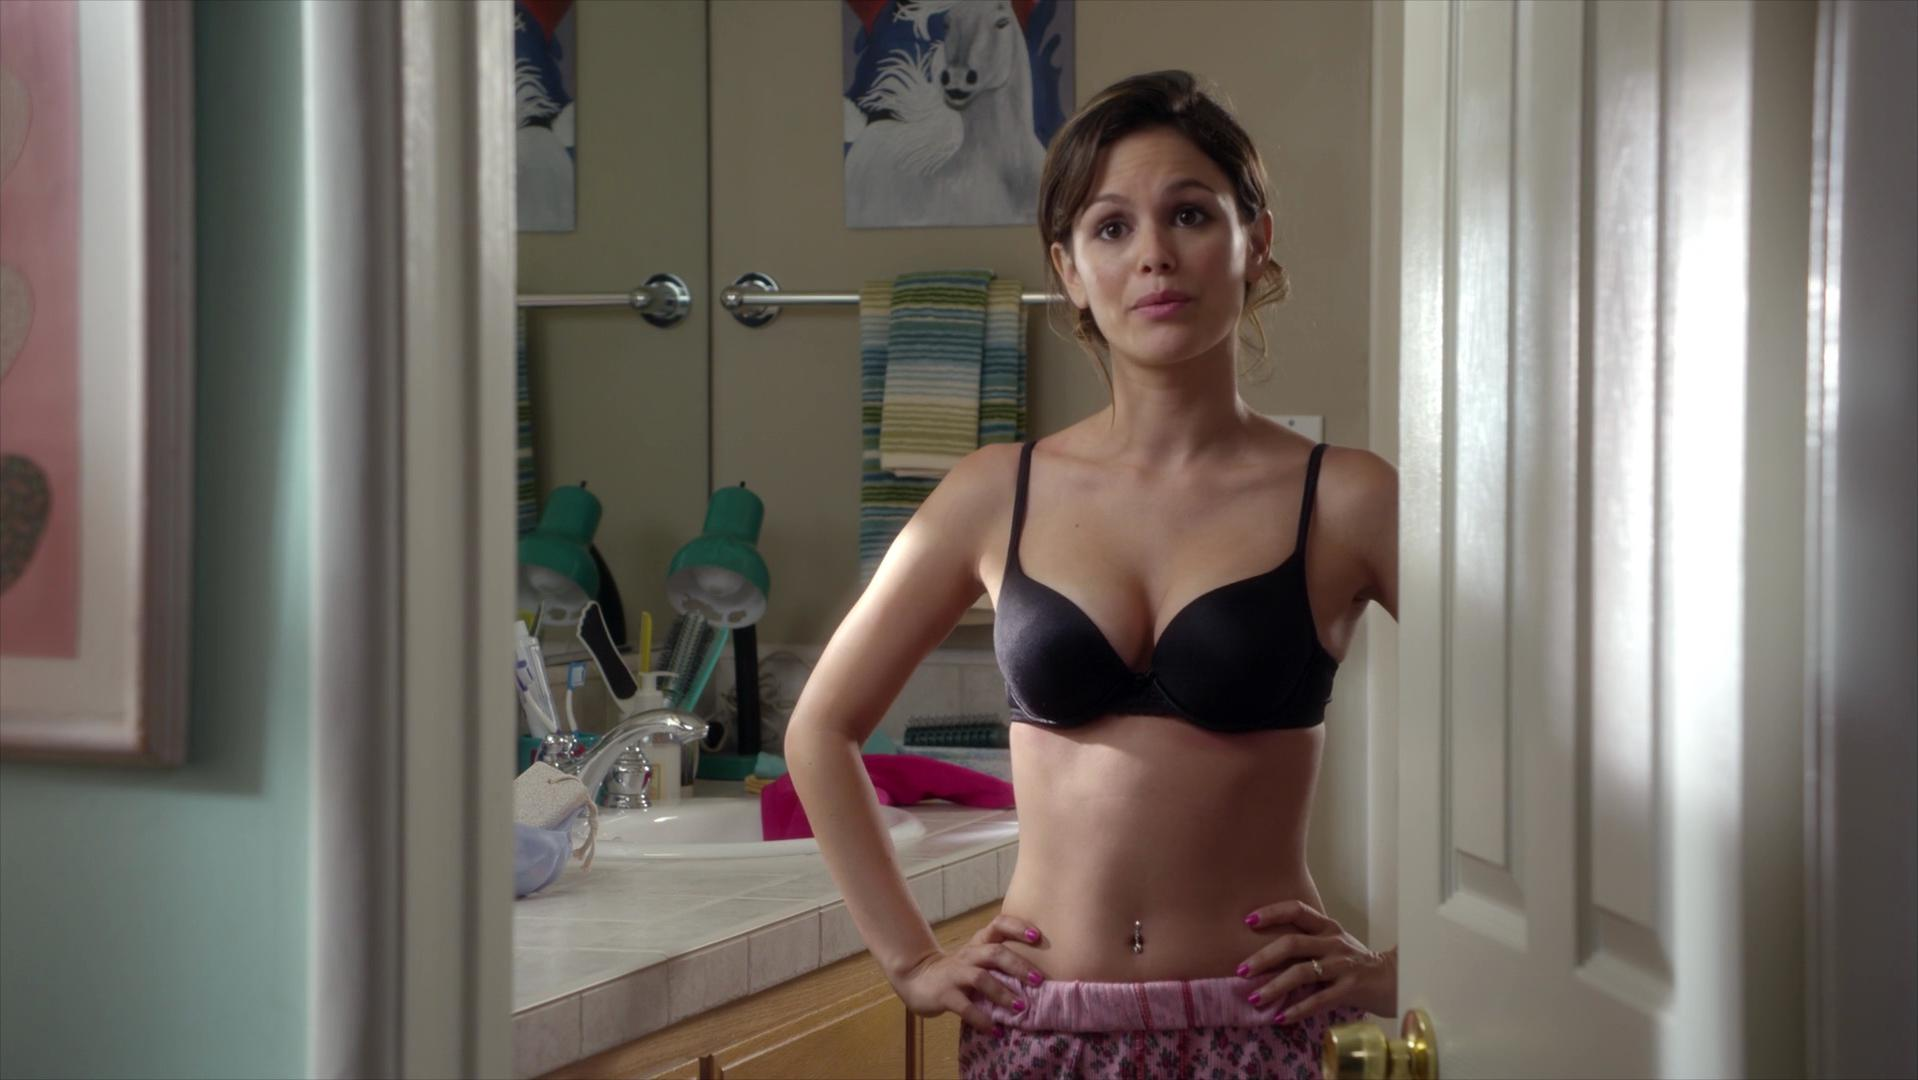 Rachel bilson nude the actress